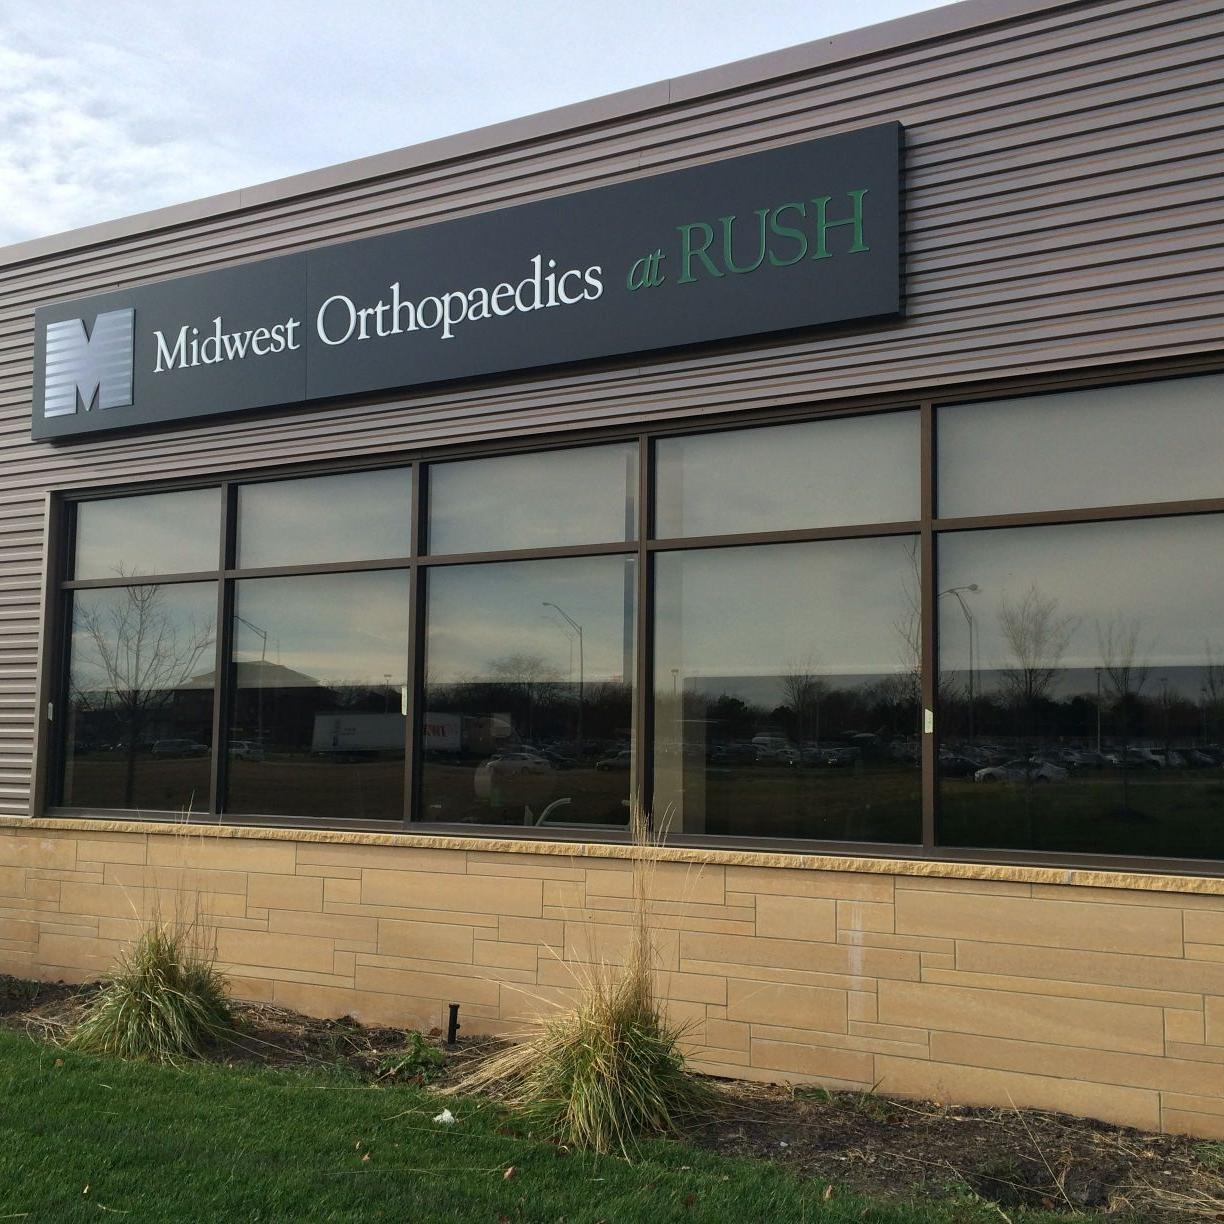 Rush orthopedics expands reach with Munster location